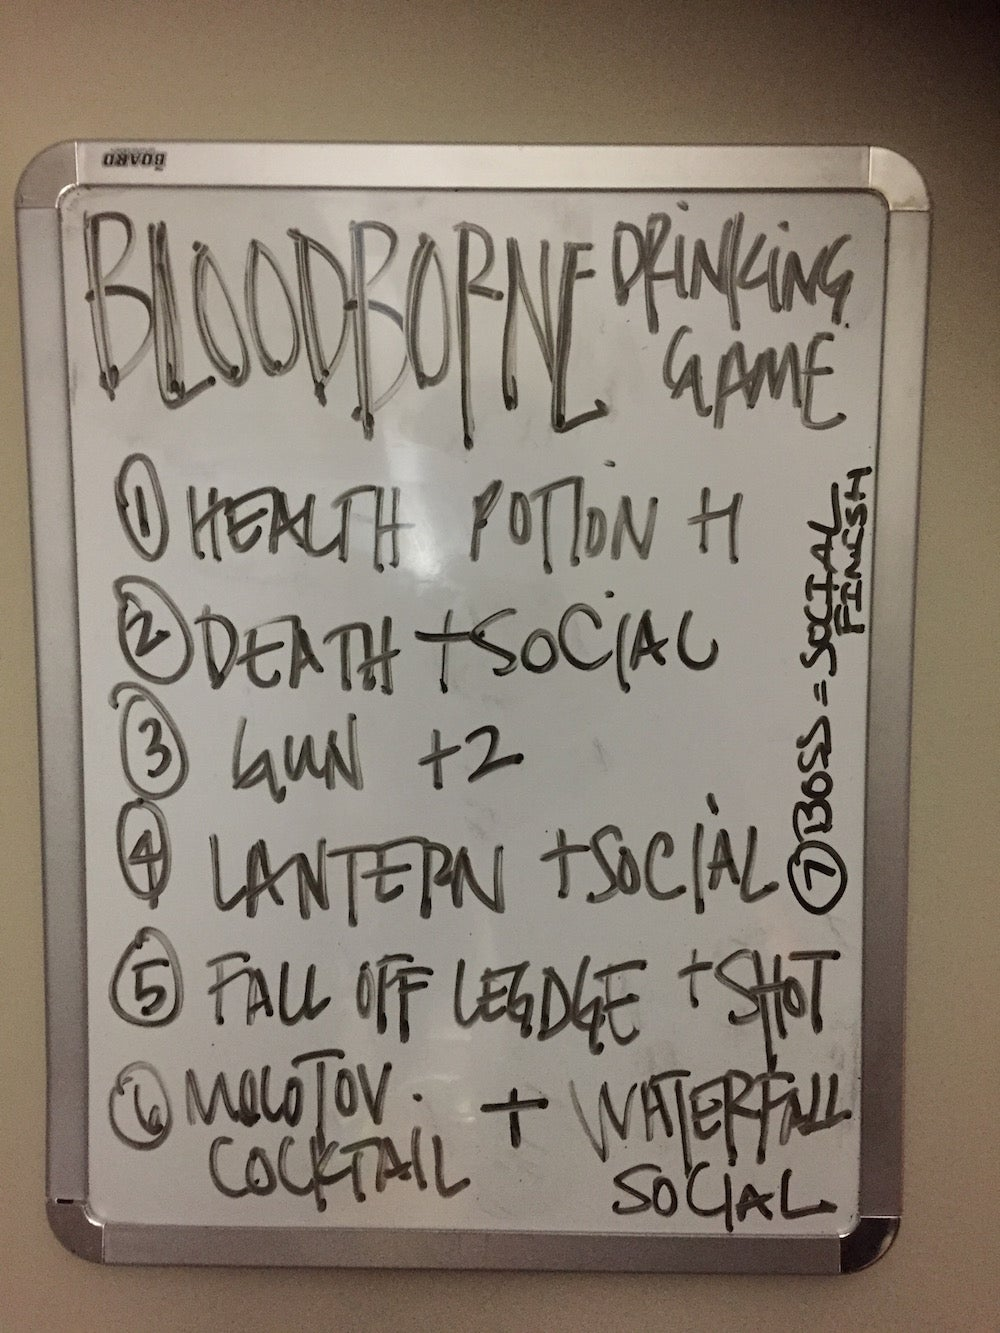 I Have Created A Bloodborne Drinking Game